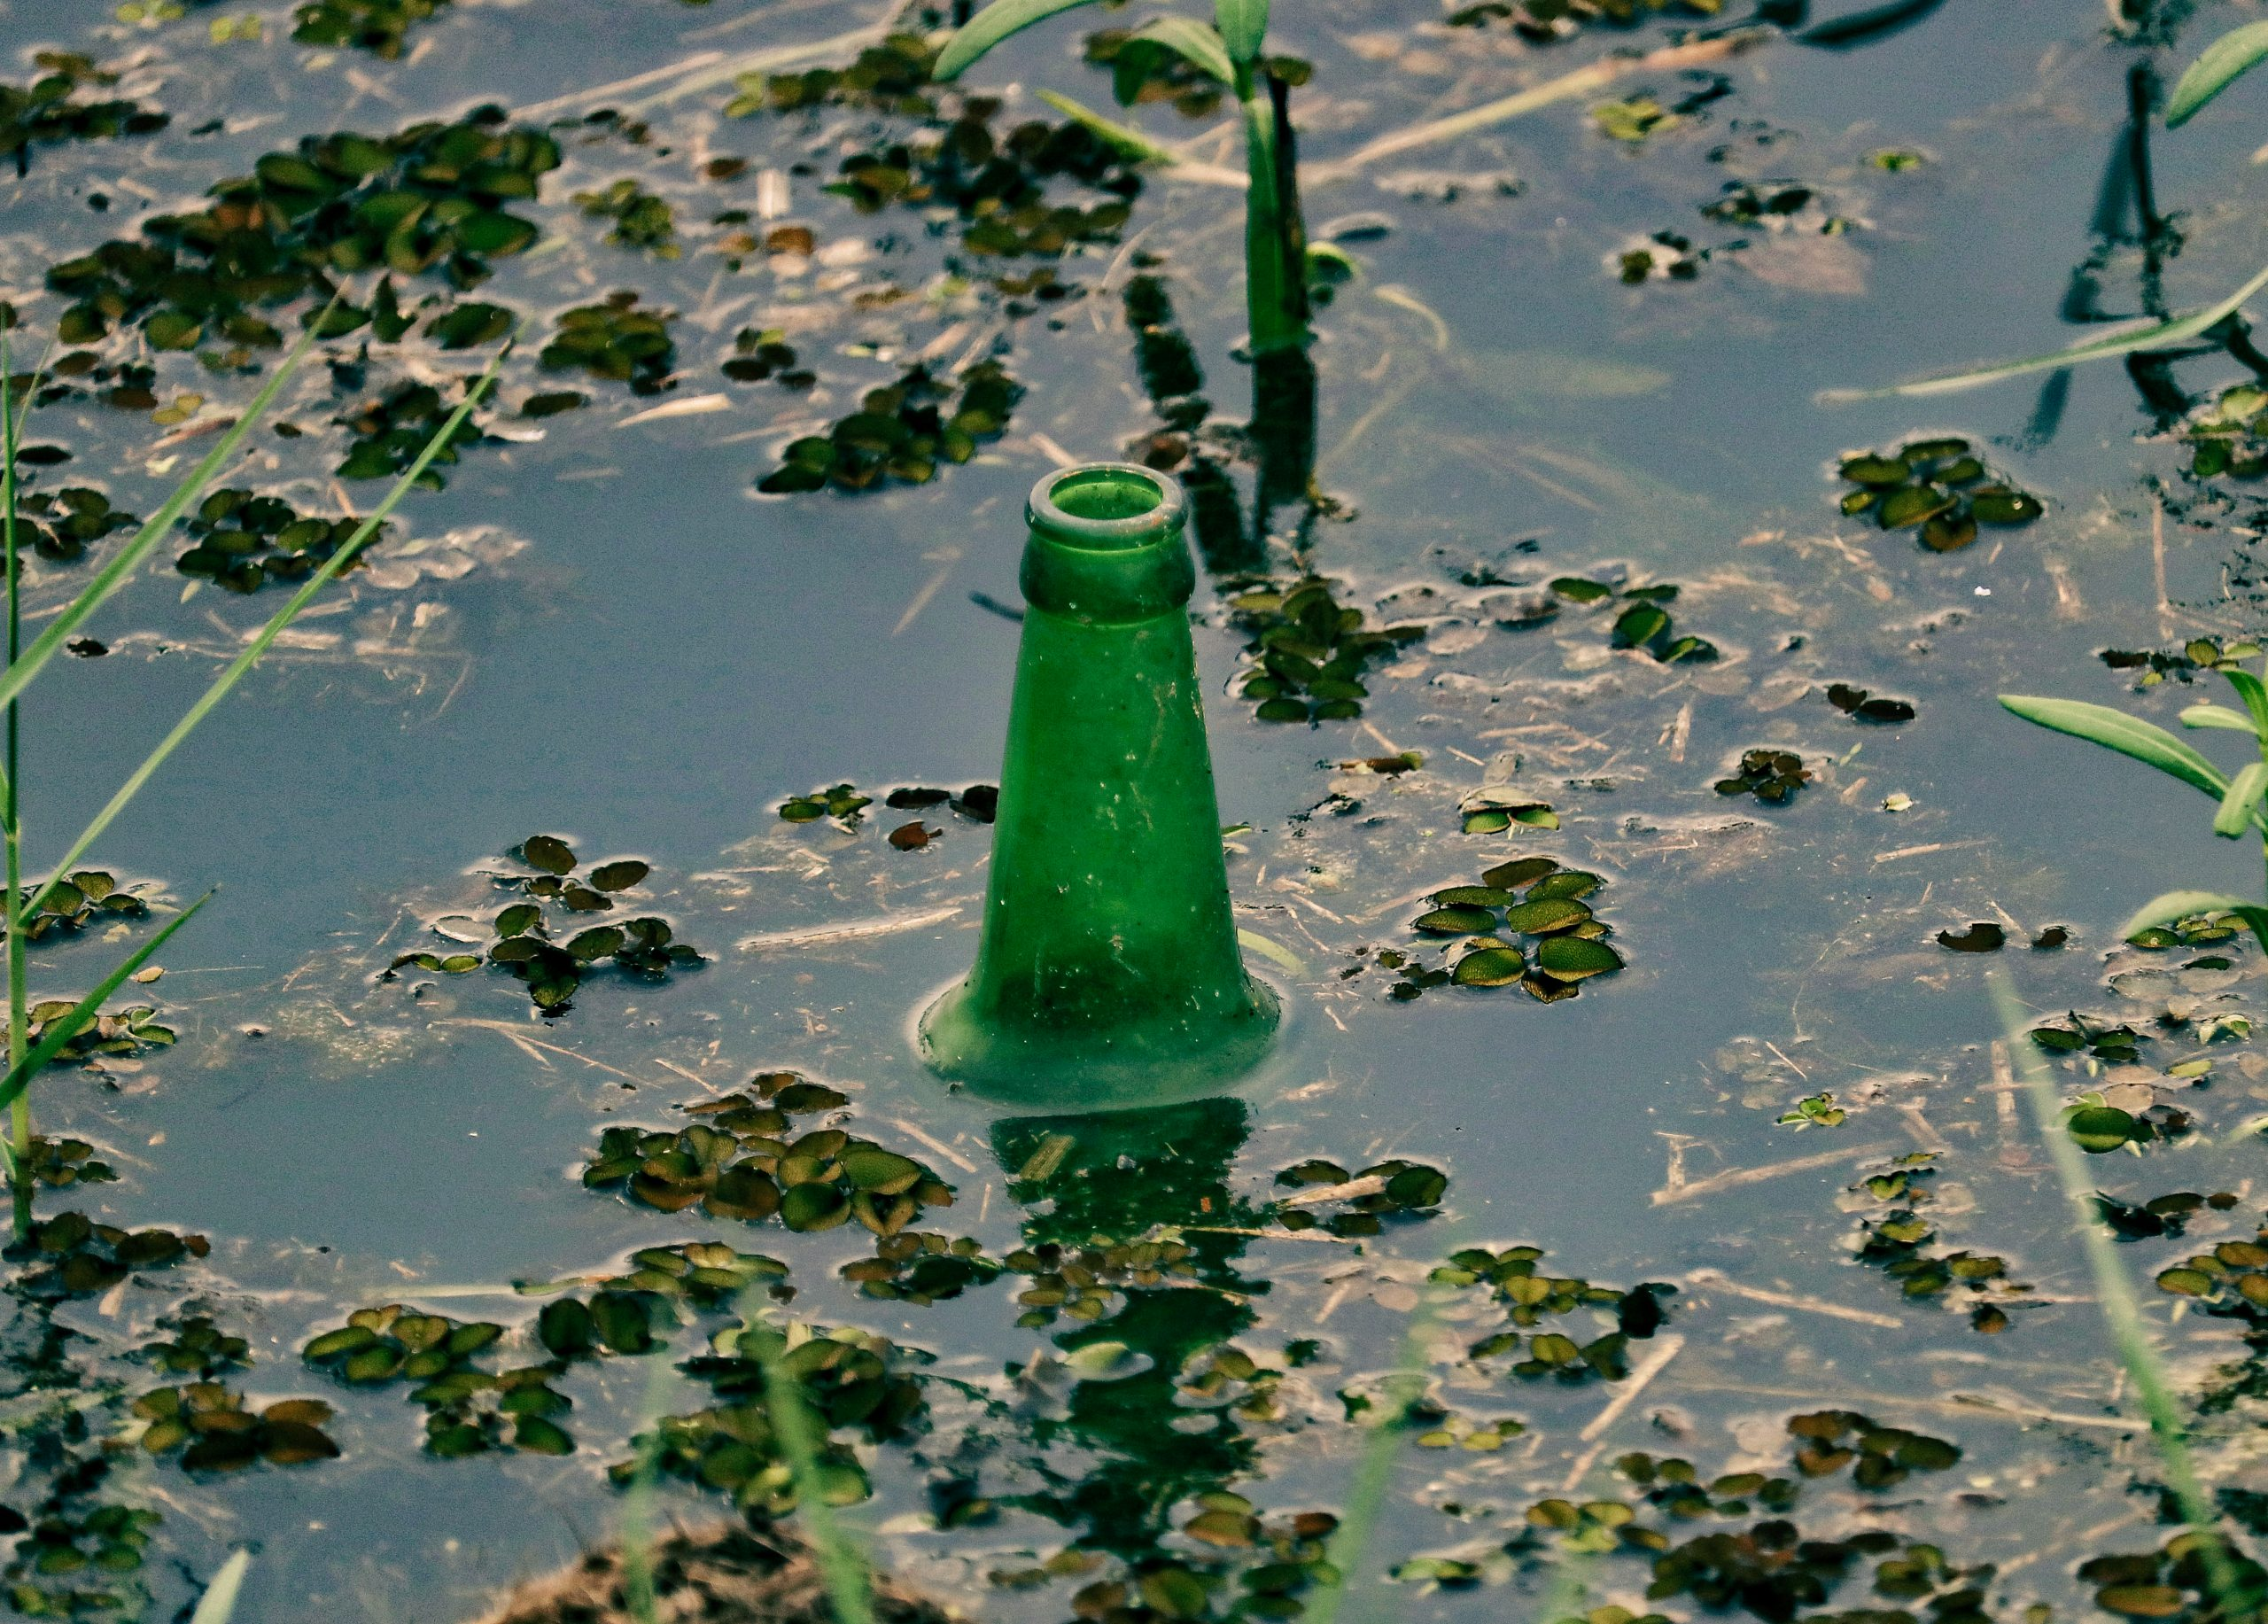 A glass bottle in a pond